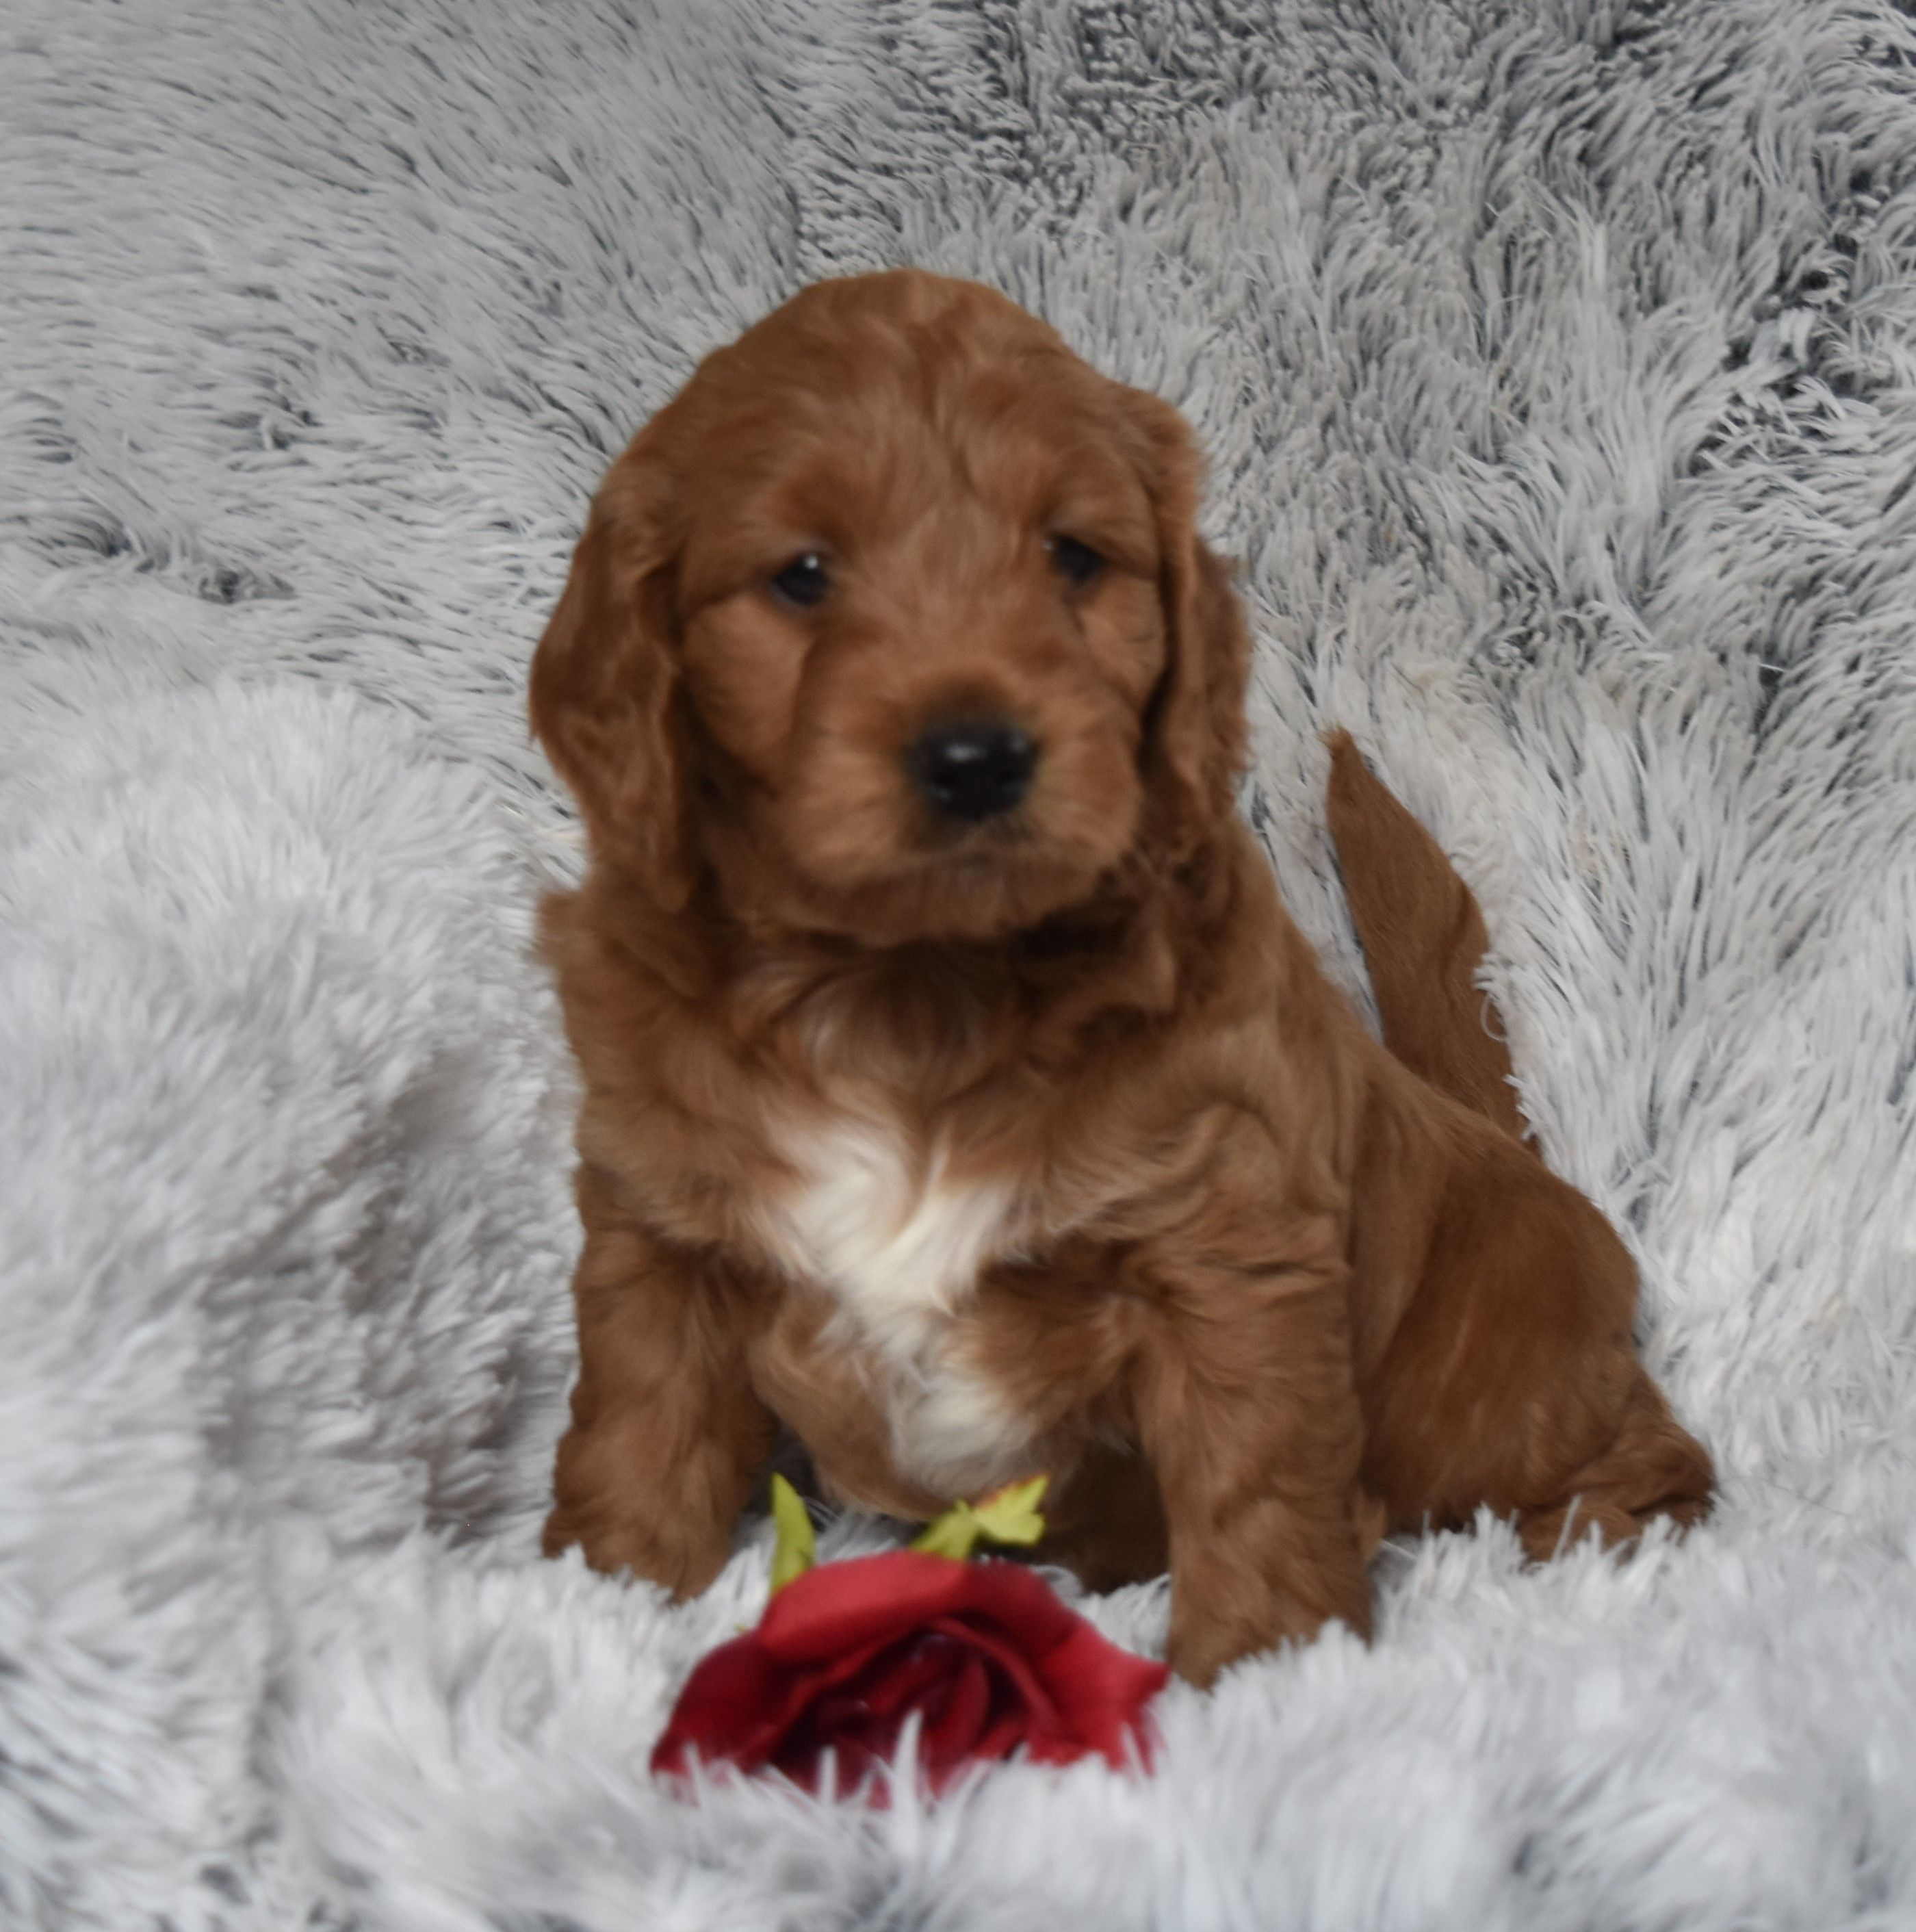 Puppies for Sale Puppies, Baby beagle, Mini goldendoodle